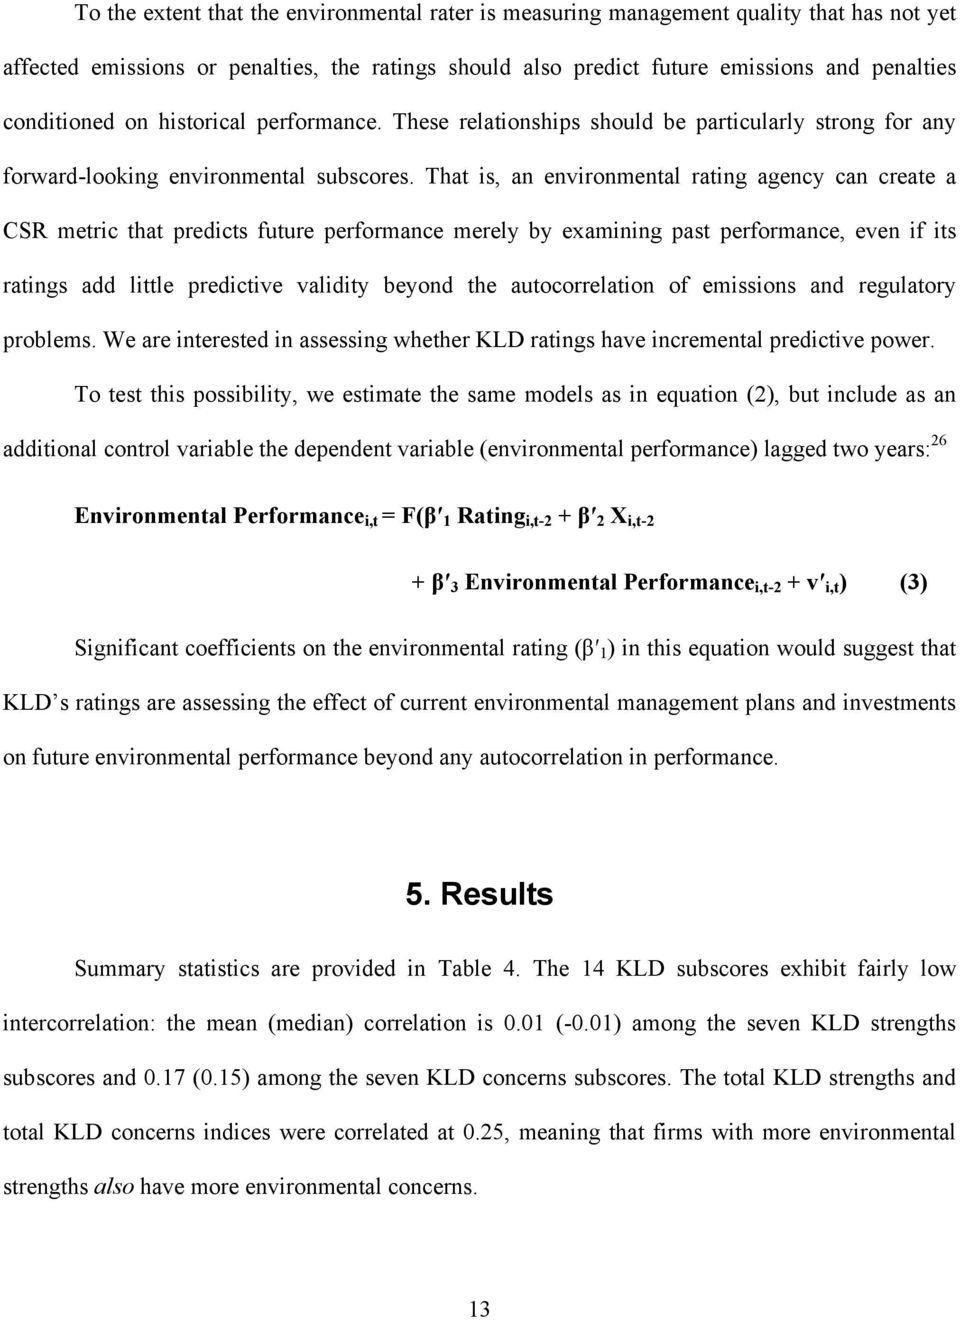 That is, an environmental rating agency can create a CSR metric that predicts future performance merely by examining past performance, even if its ratings add little predictive validity beyond the